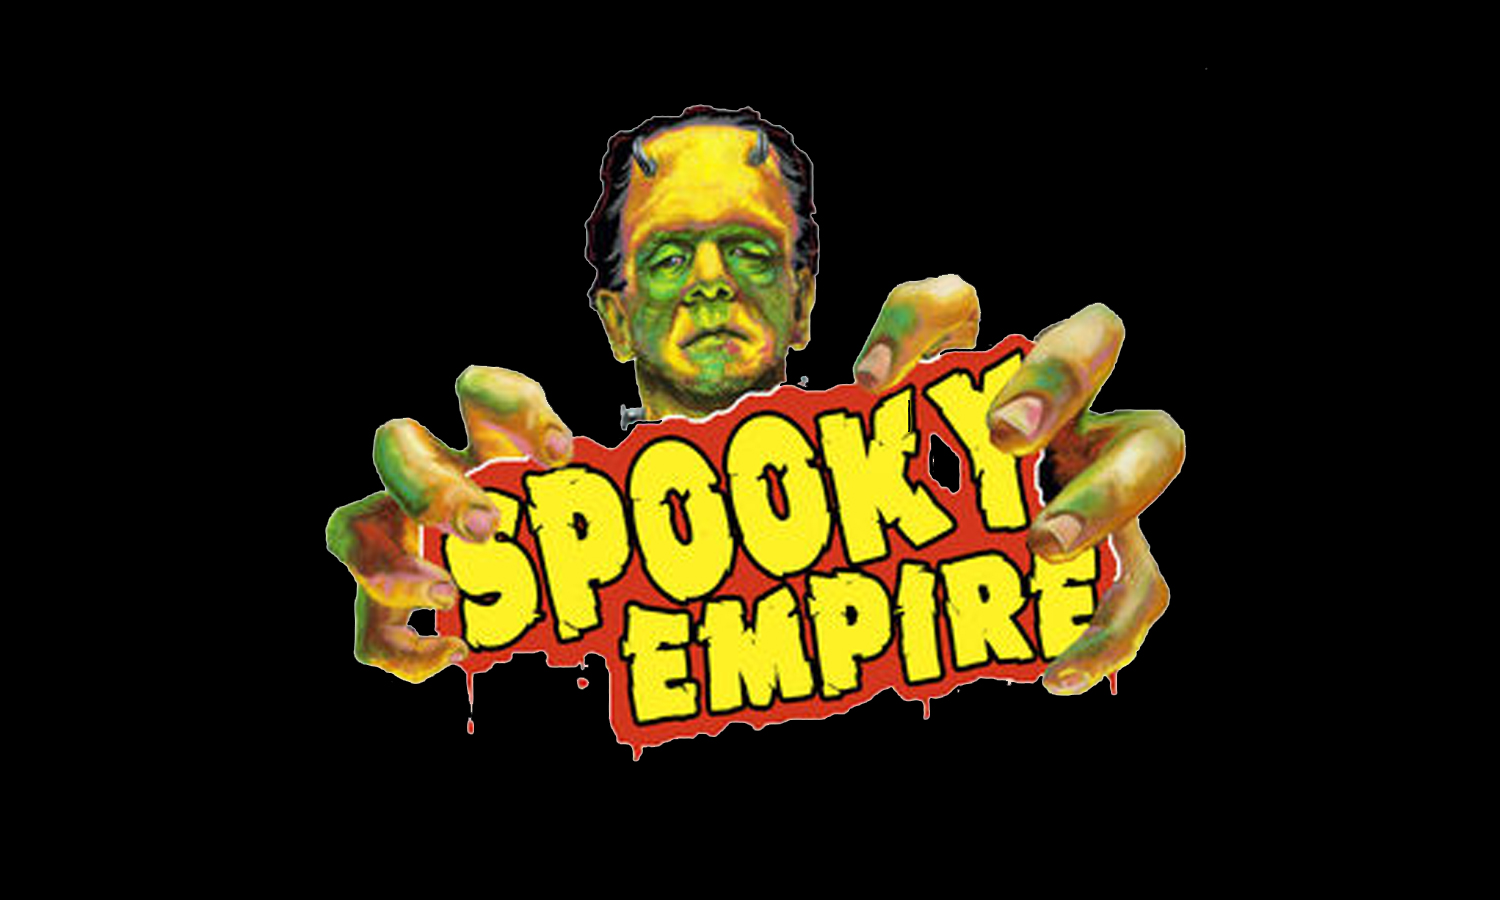 Spooky Empire in Orlando Halloween Weekend!